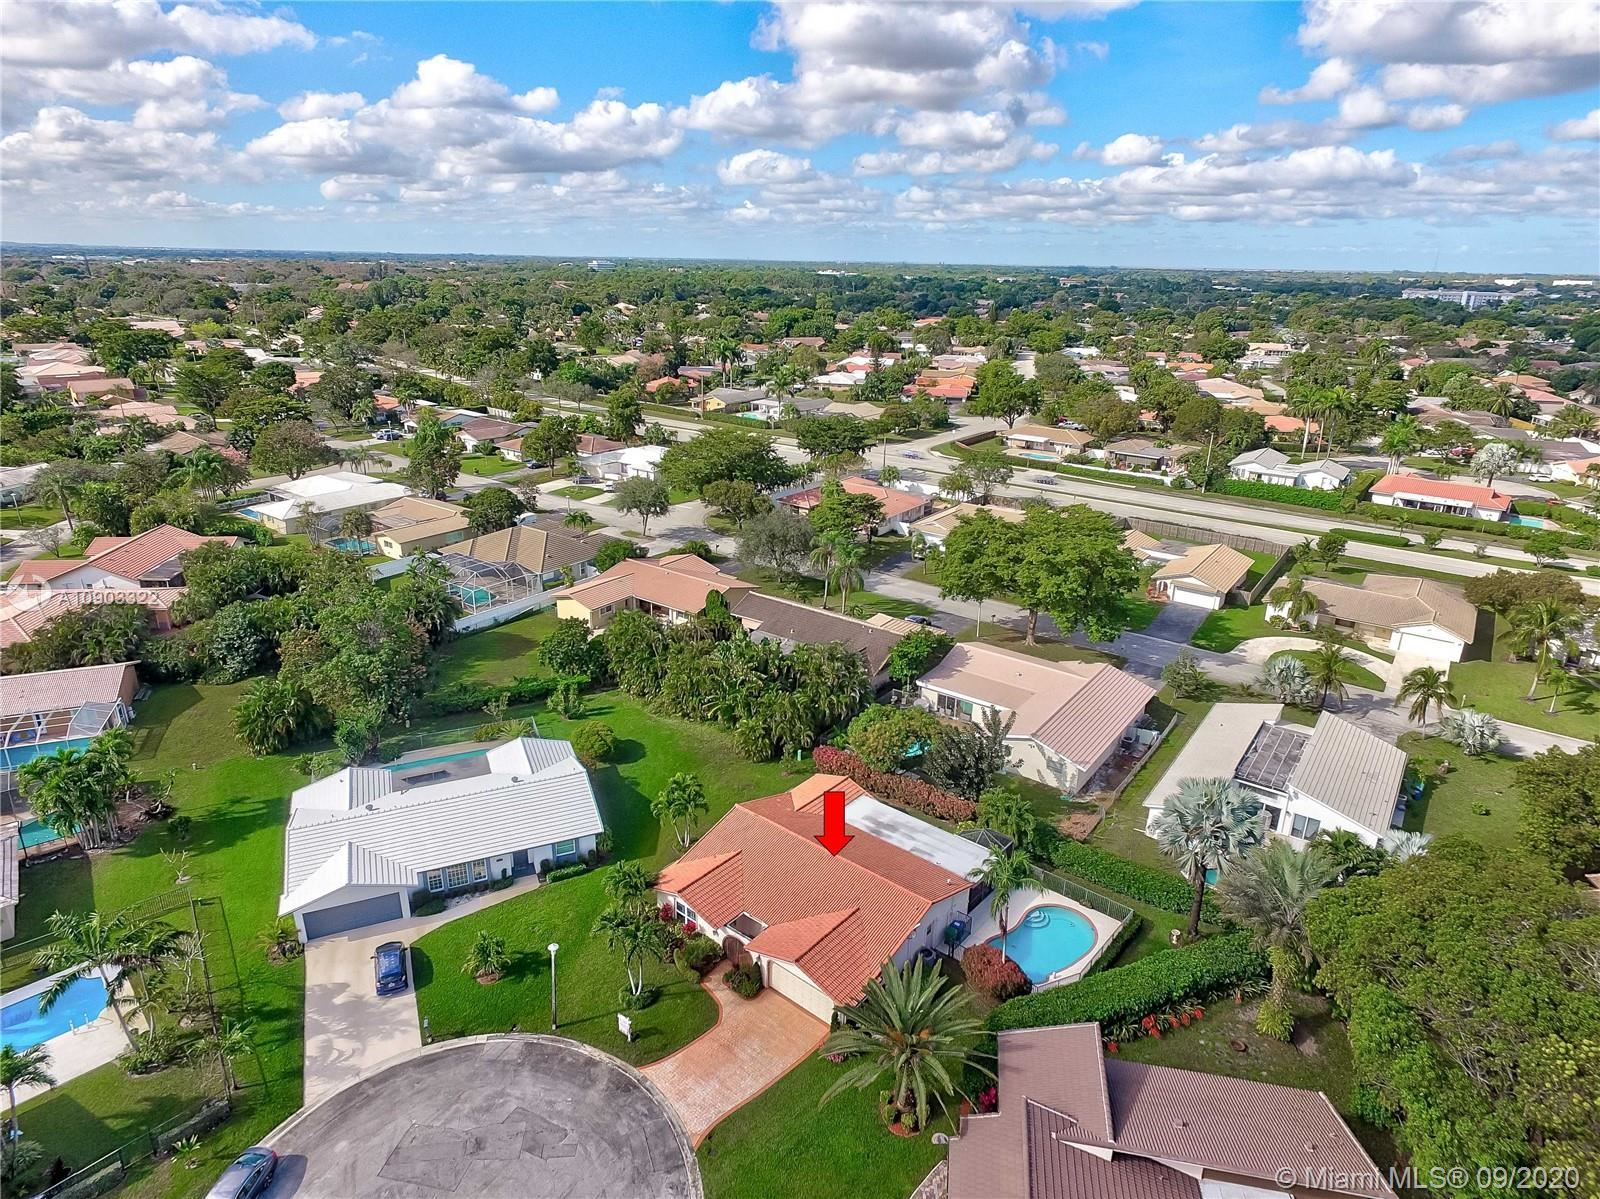 8377 NW 19th Ct, Coral Springs, FL 33071 - #: A10903322